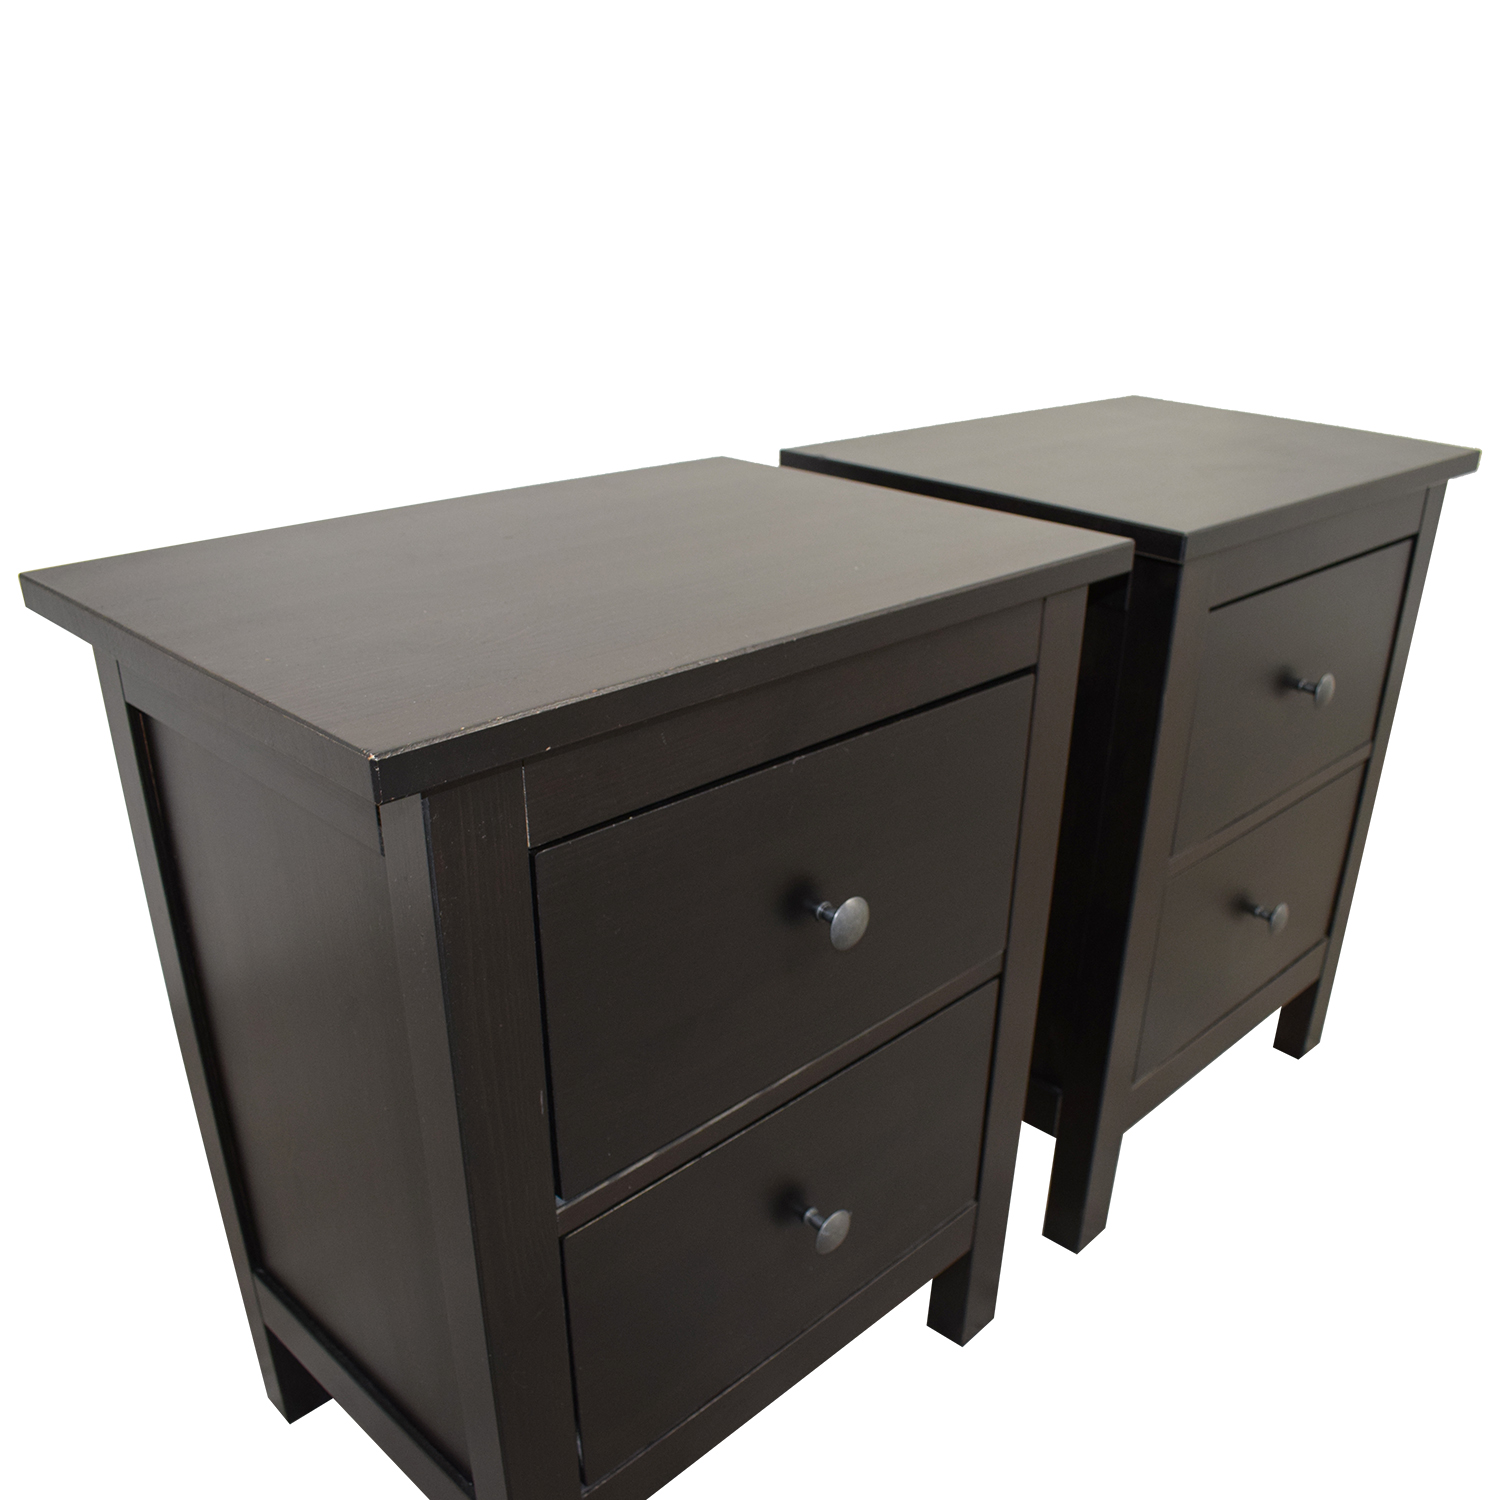 Ikea Ikea Hemnes Side Table Tables: IKEA IKEA Hemnes Two-Drawer Nightstands / Tables